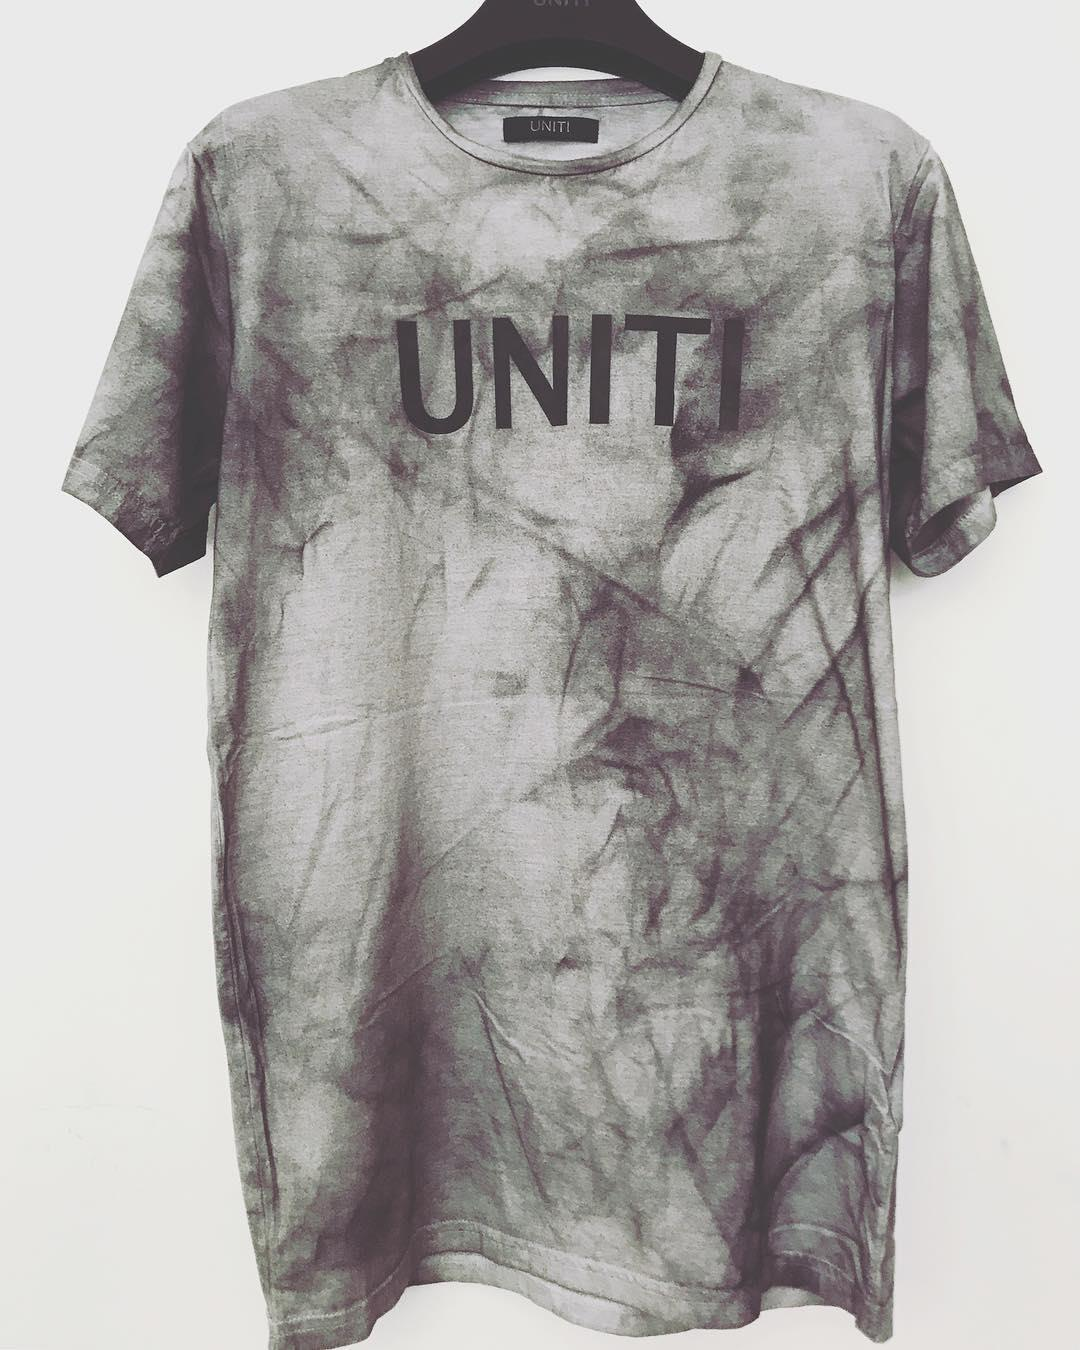 NEW Distressed waxed t-shirt now in store ⚫️ #babakvosoughi #unitibv #tehran #iran #losangeles #london #dubai